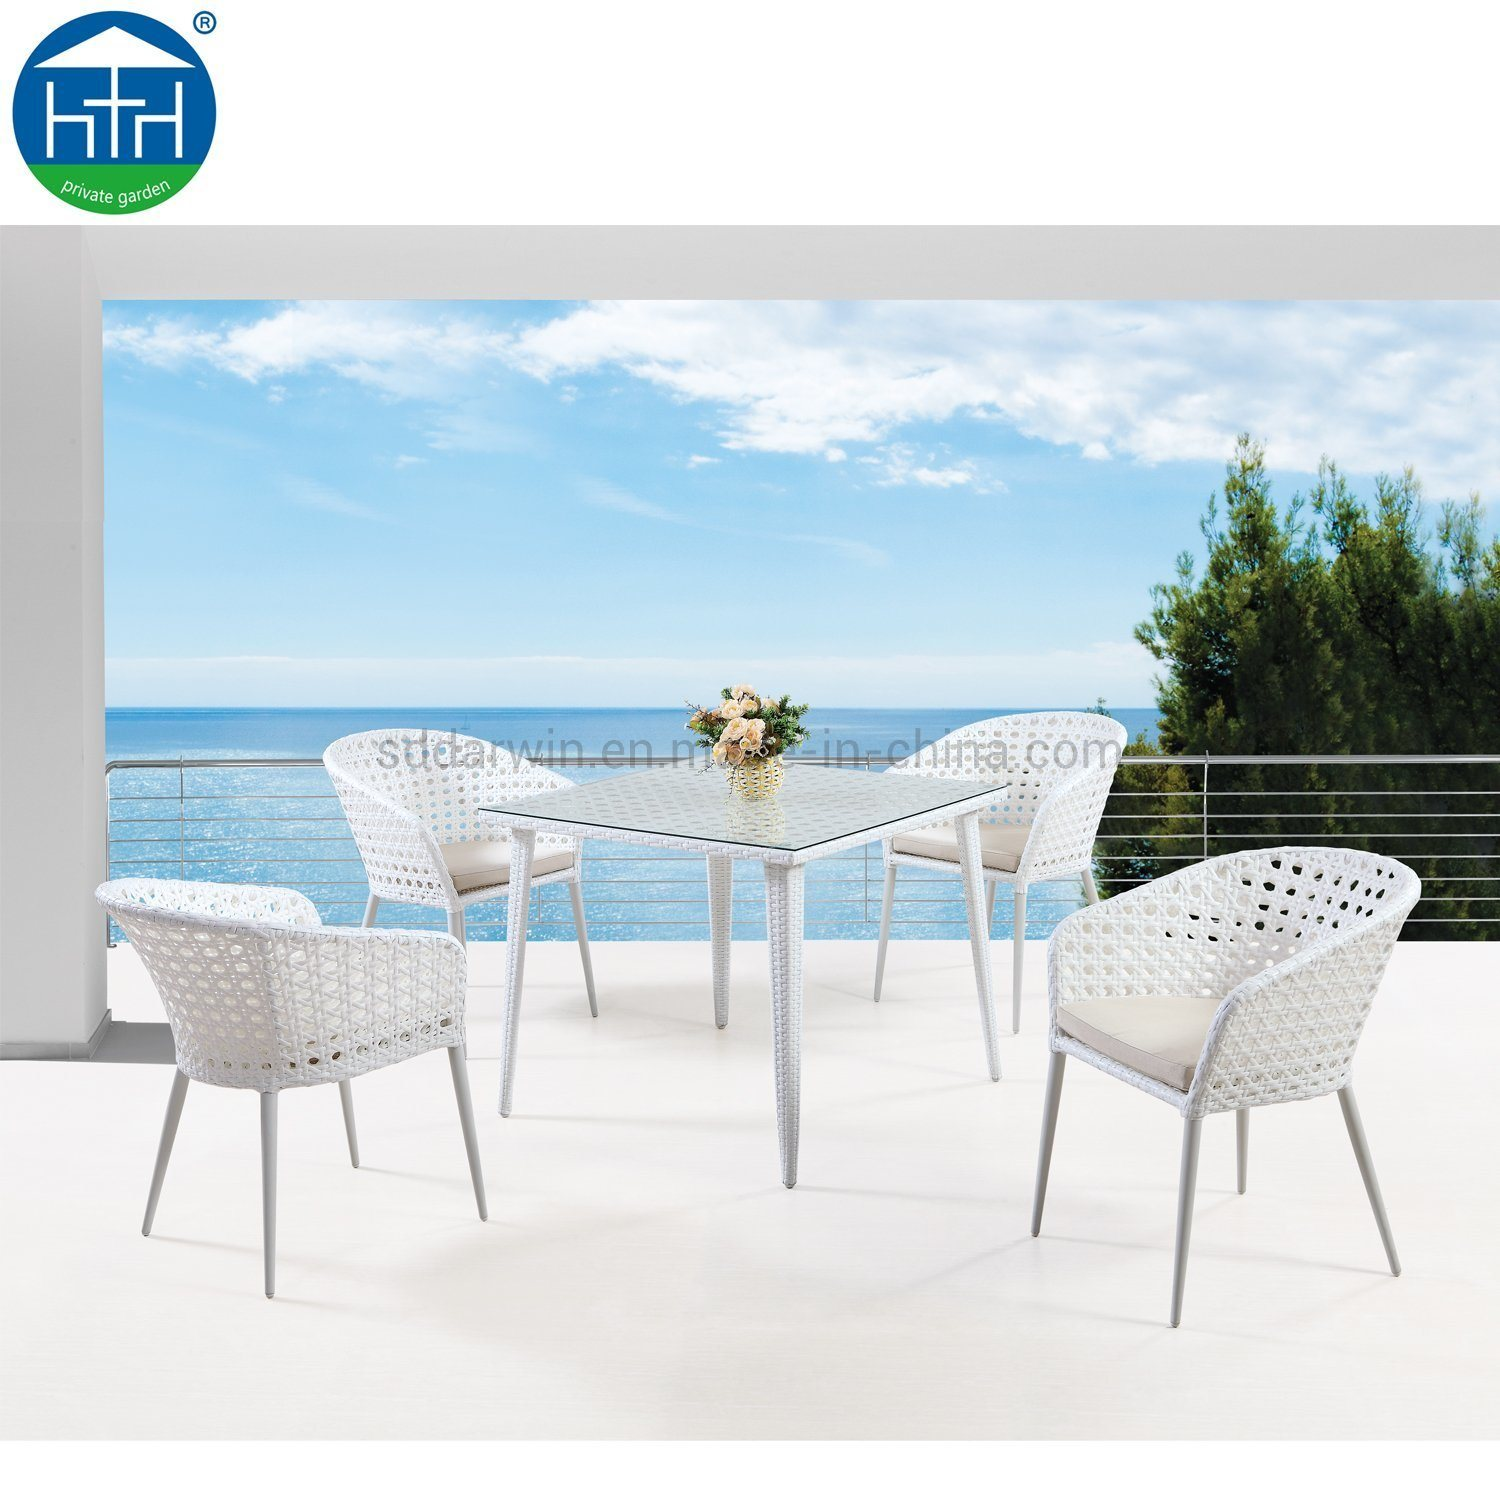 Patio Furniture Table And Chairs Hot Item Durable Garden Rattan Table And Chair Wicker Patio Furniture For Garden